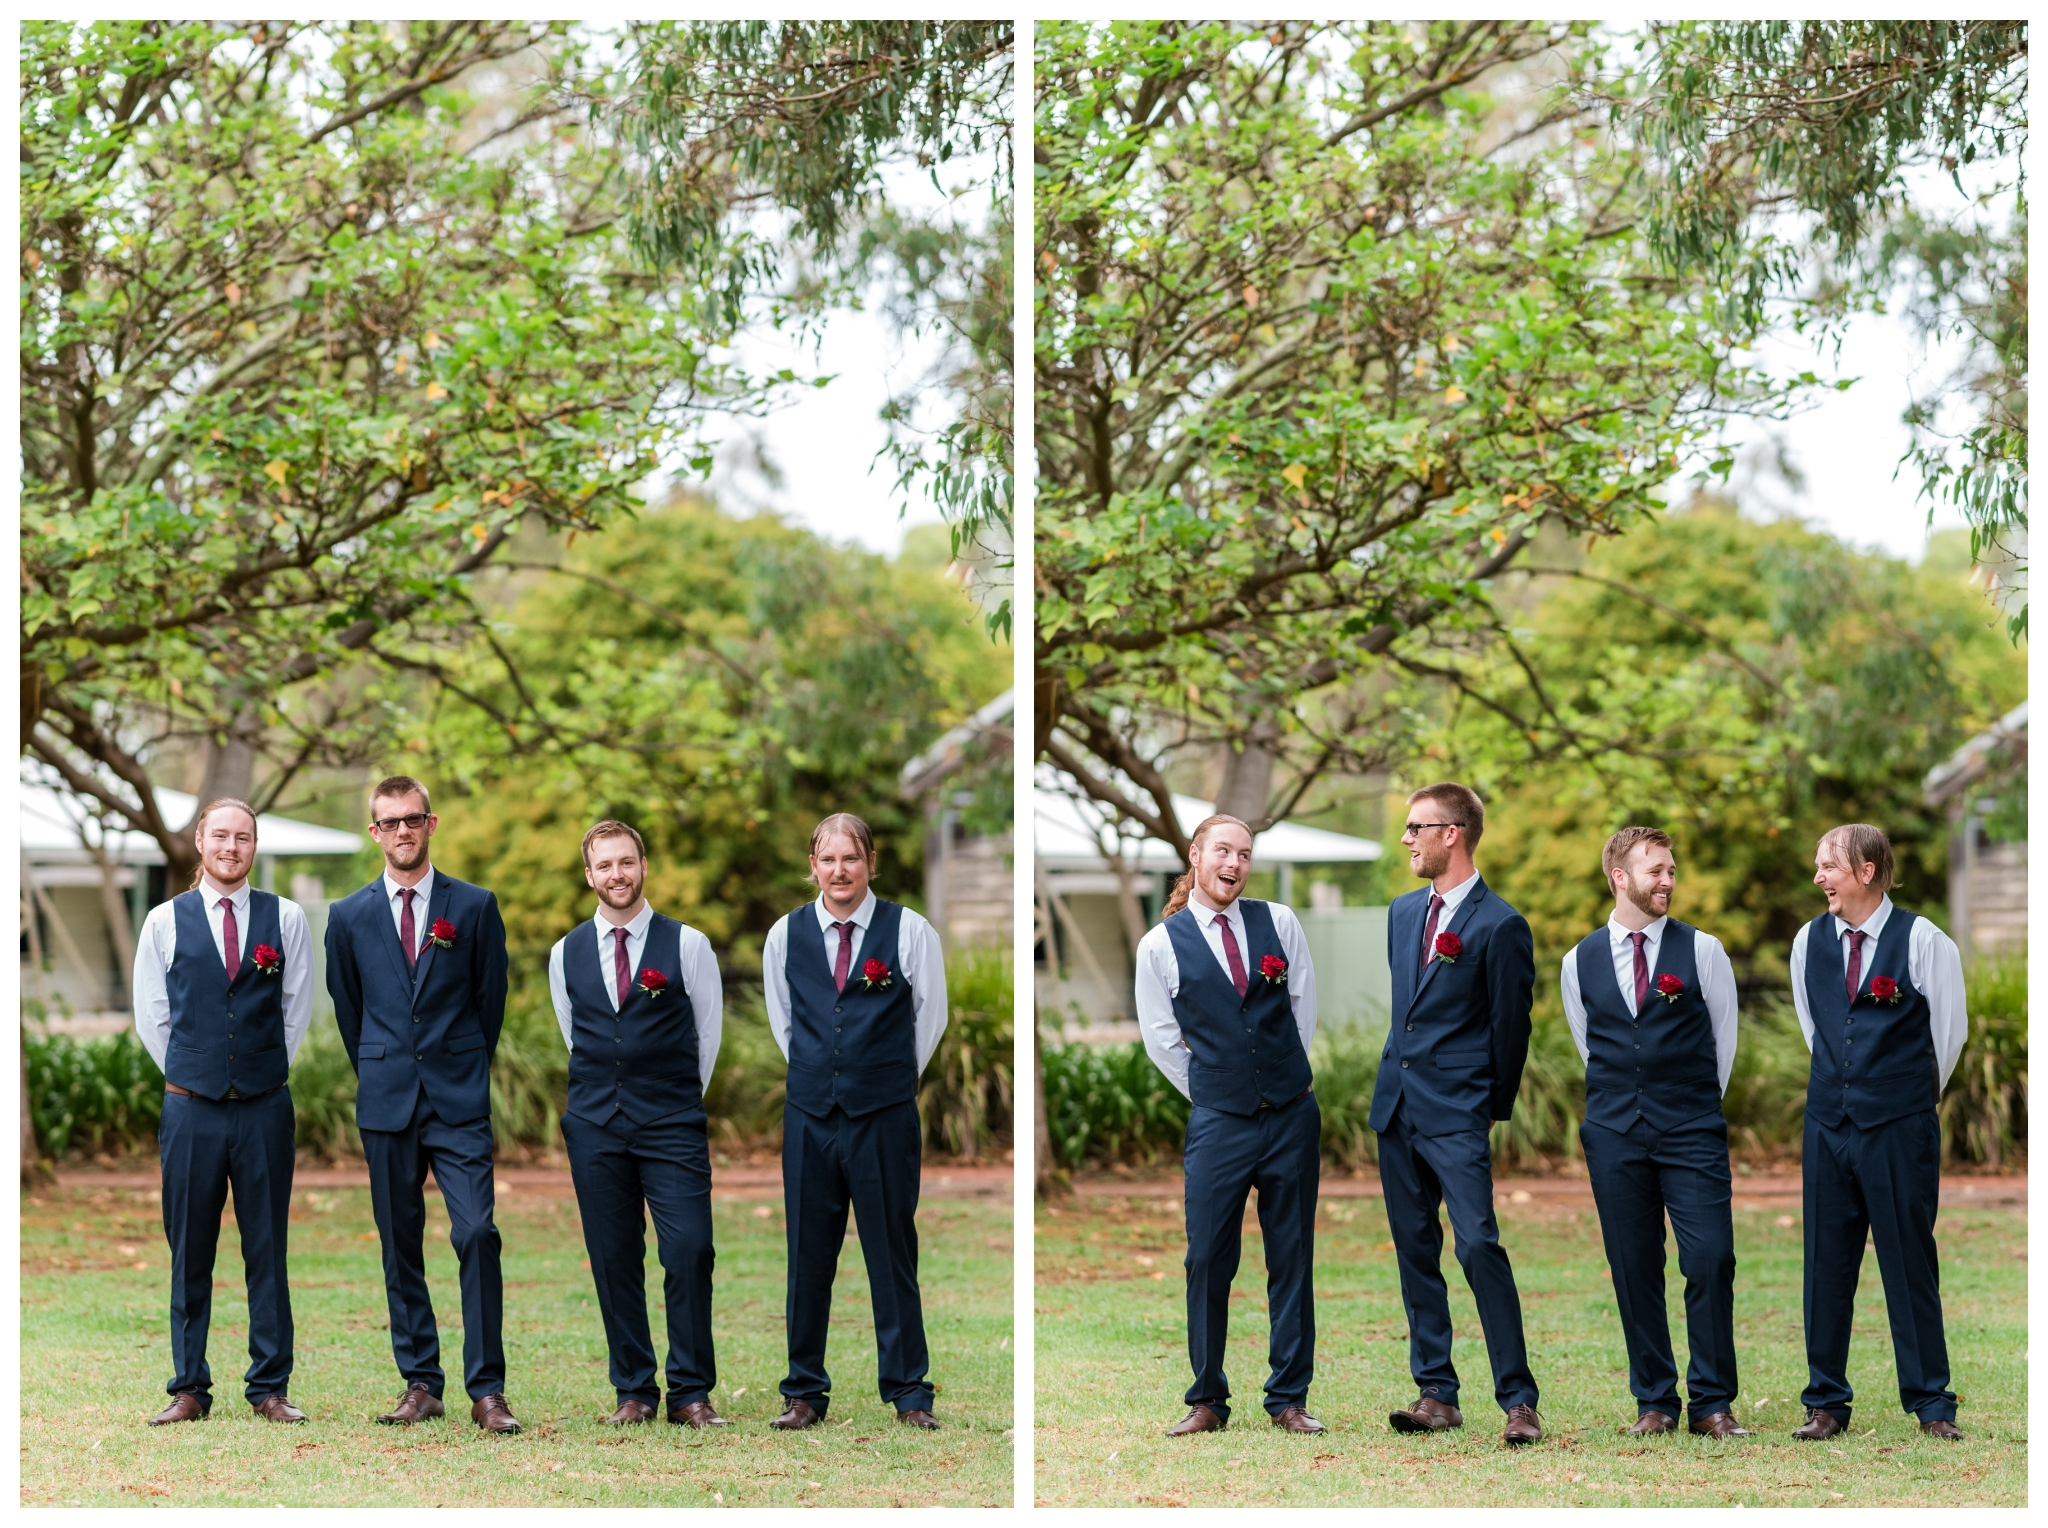 Groom-and-Groomsmen_Pinjarra